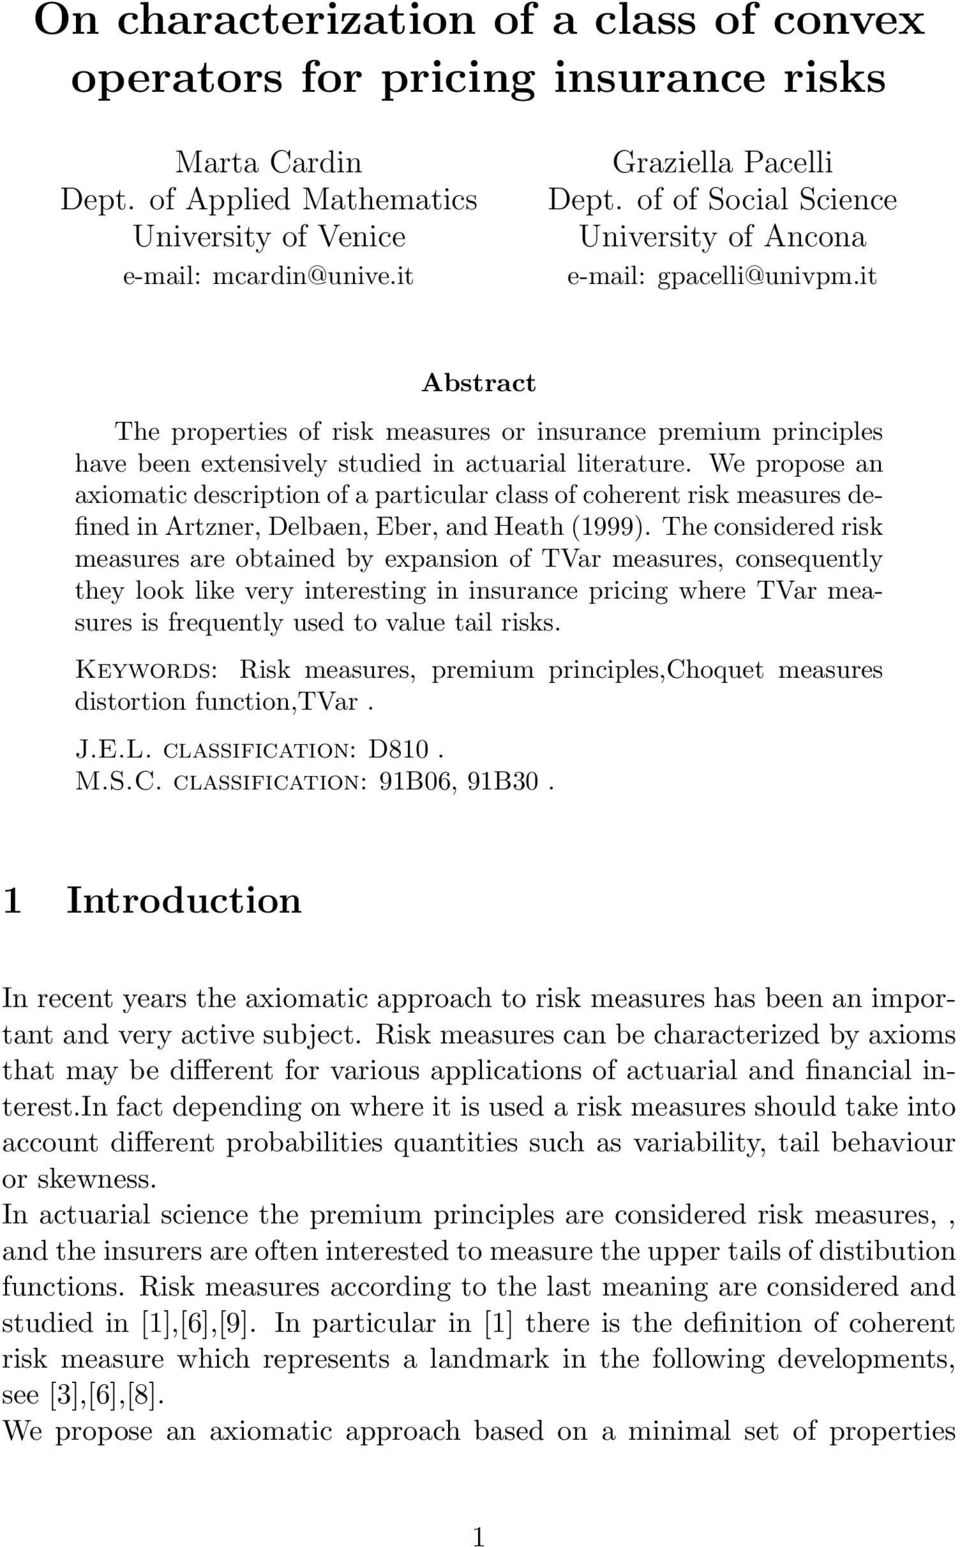 We propose an axiomatic description of a particular class of coherent risk measures defined in Artzner, Delbaen, Eber, and Heath (1999).